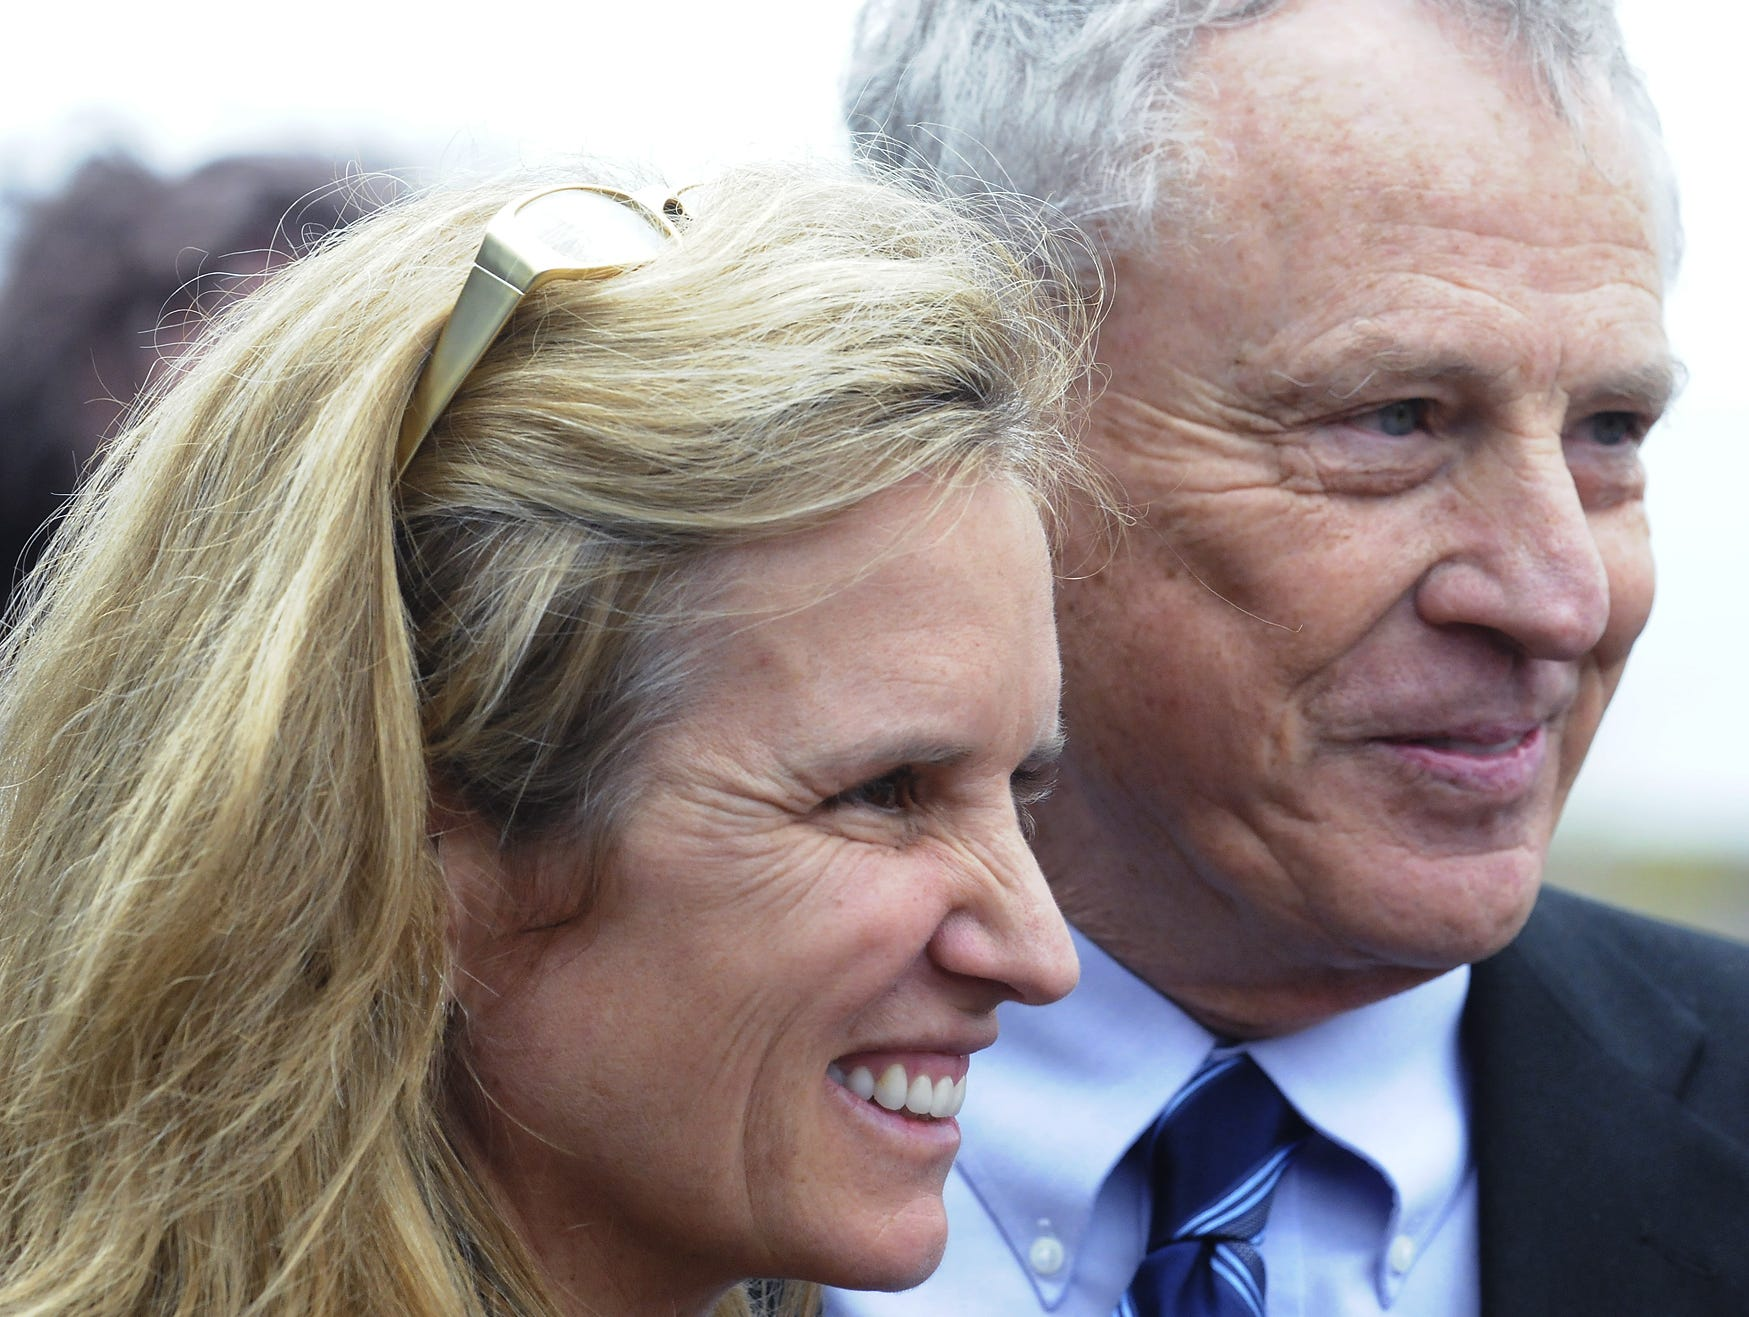 Morris Dees, co-founder of the Southern Poverty Law Center, right, stands with Kerry Kennedy, human rights activist and daughter of Robert Kennedy, at the Civil Rights Memorial in Montgomery, Ala. during a tour by a congressional delegation on Saturday March 5, 2011. The group is touring civil rights locations and will attend the annual Bloody Sunday observance in Selma, Ala. on Sunday March 6, 2011. (Montgomery Advertiser, Mickey Welsh)